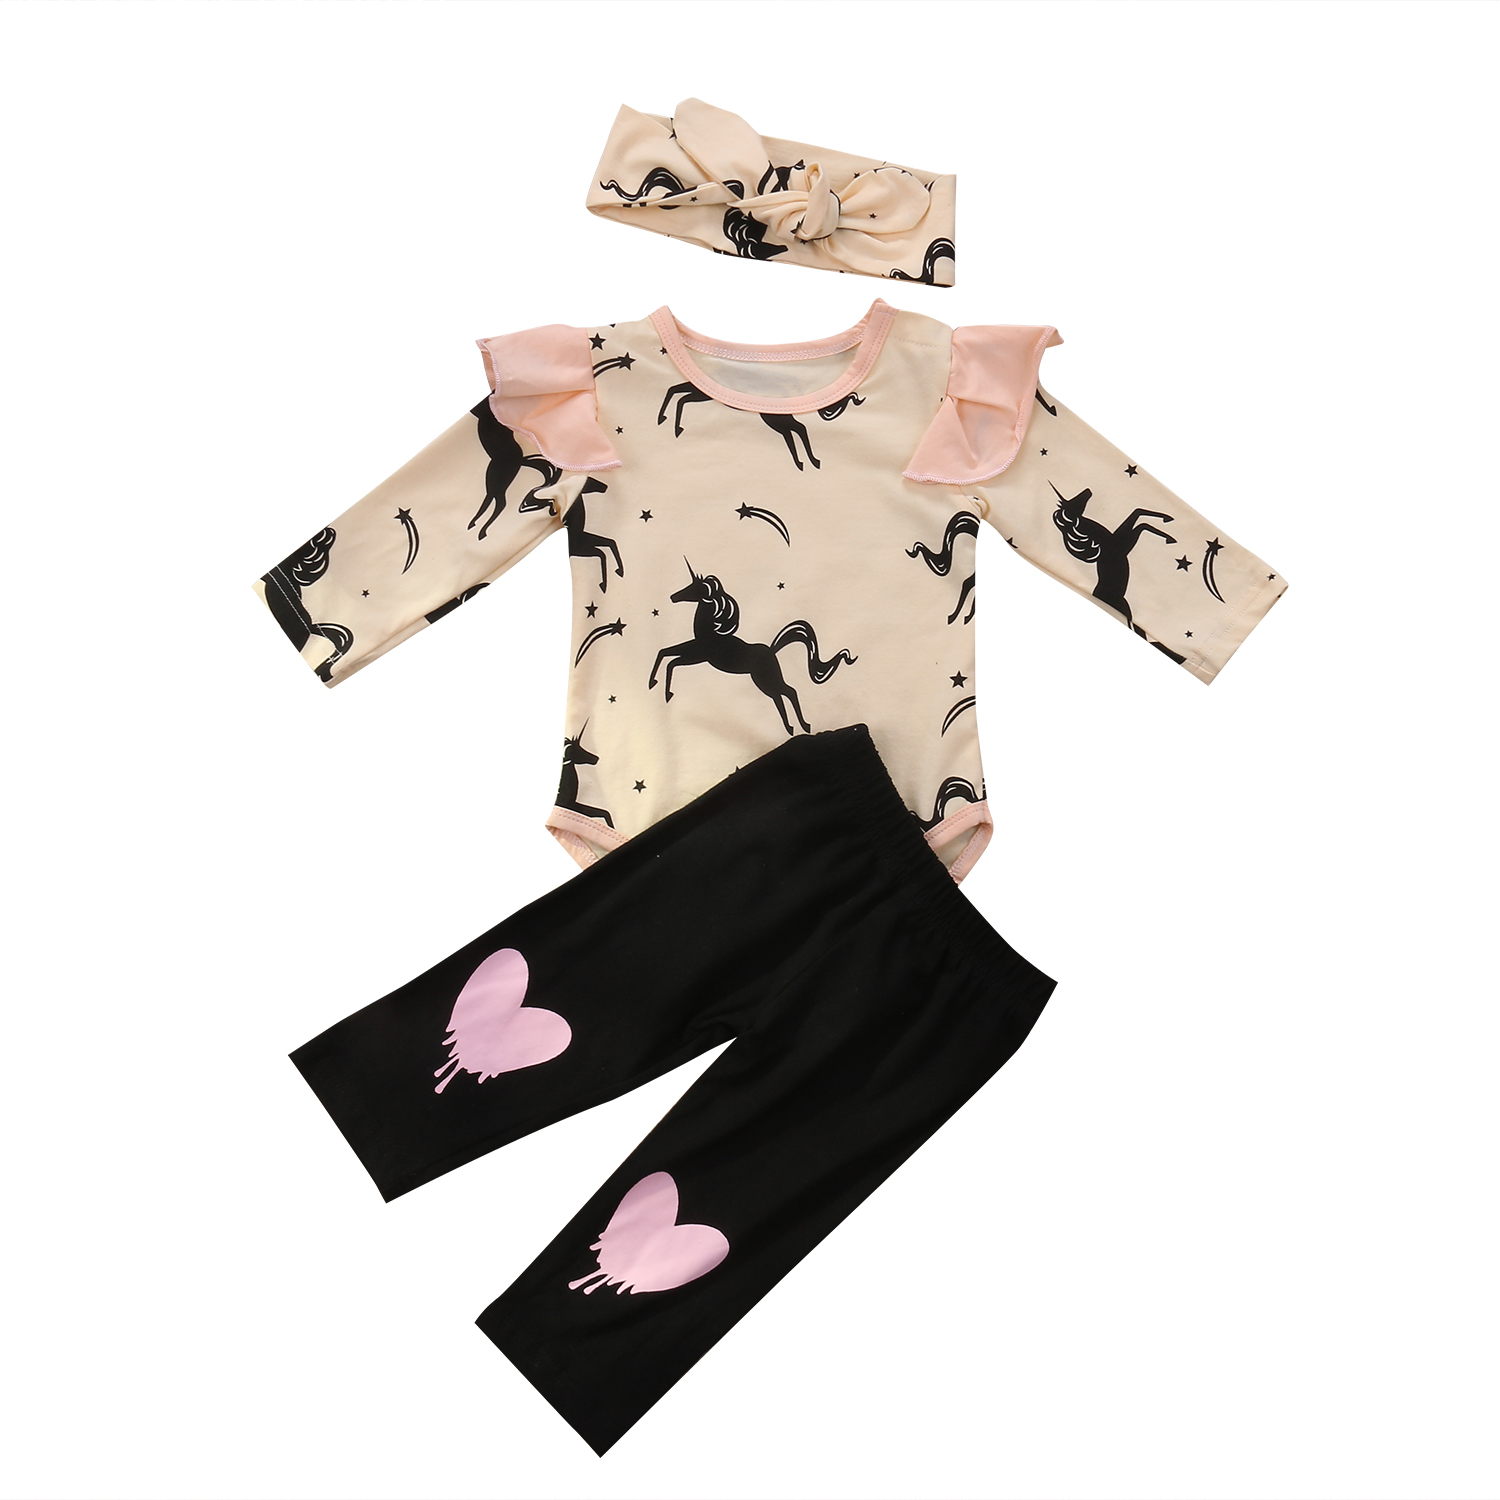 3 Pcs Babies Girls Unicorn Heart Clothing Set Newborn Infant Baby Girl Kids Bodysuit Top+Long Pants Outfit Clothes 2017 hot newborn infant baby boy girl clothes love heart bodysuit romper pant hat 3pcs outfit autumn suit clothing set